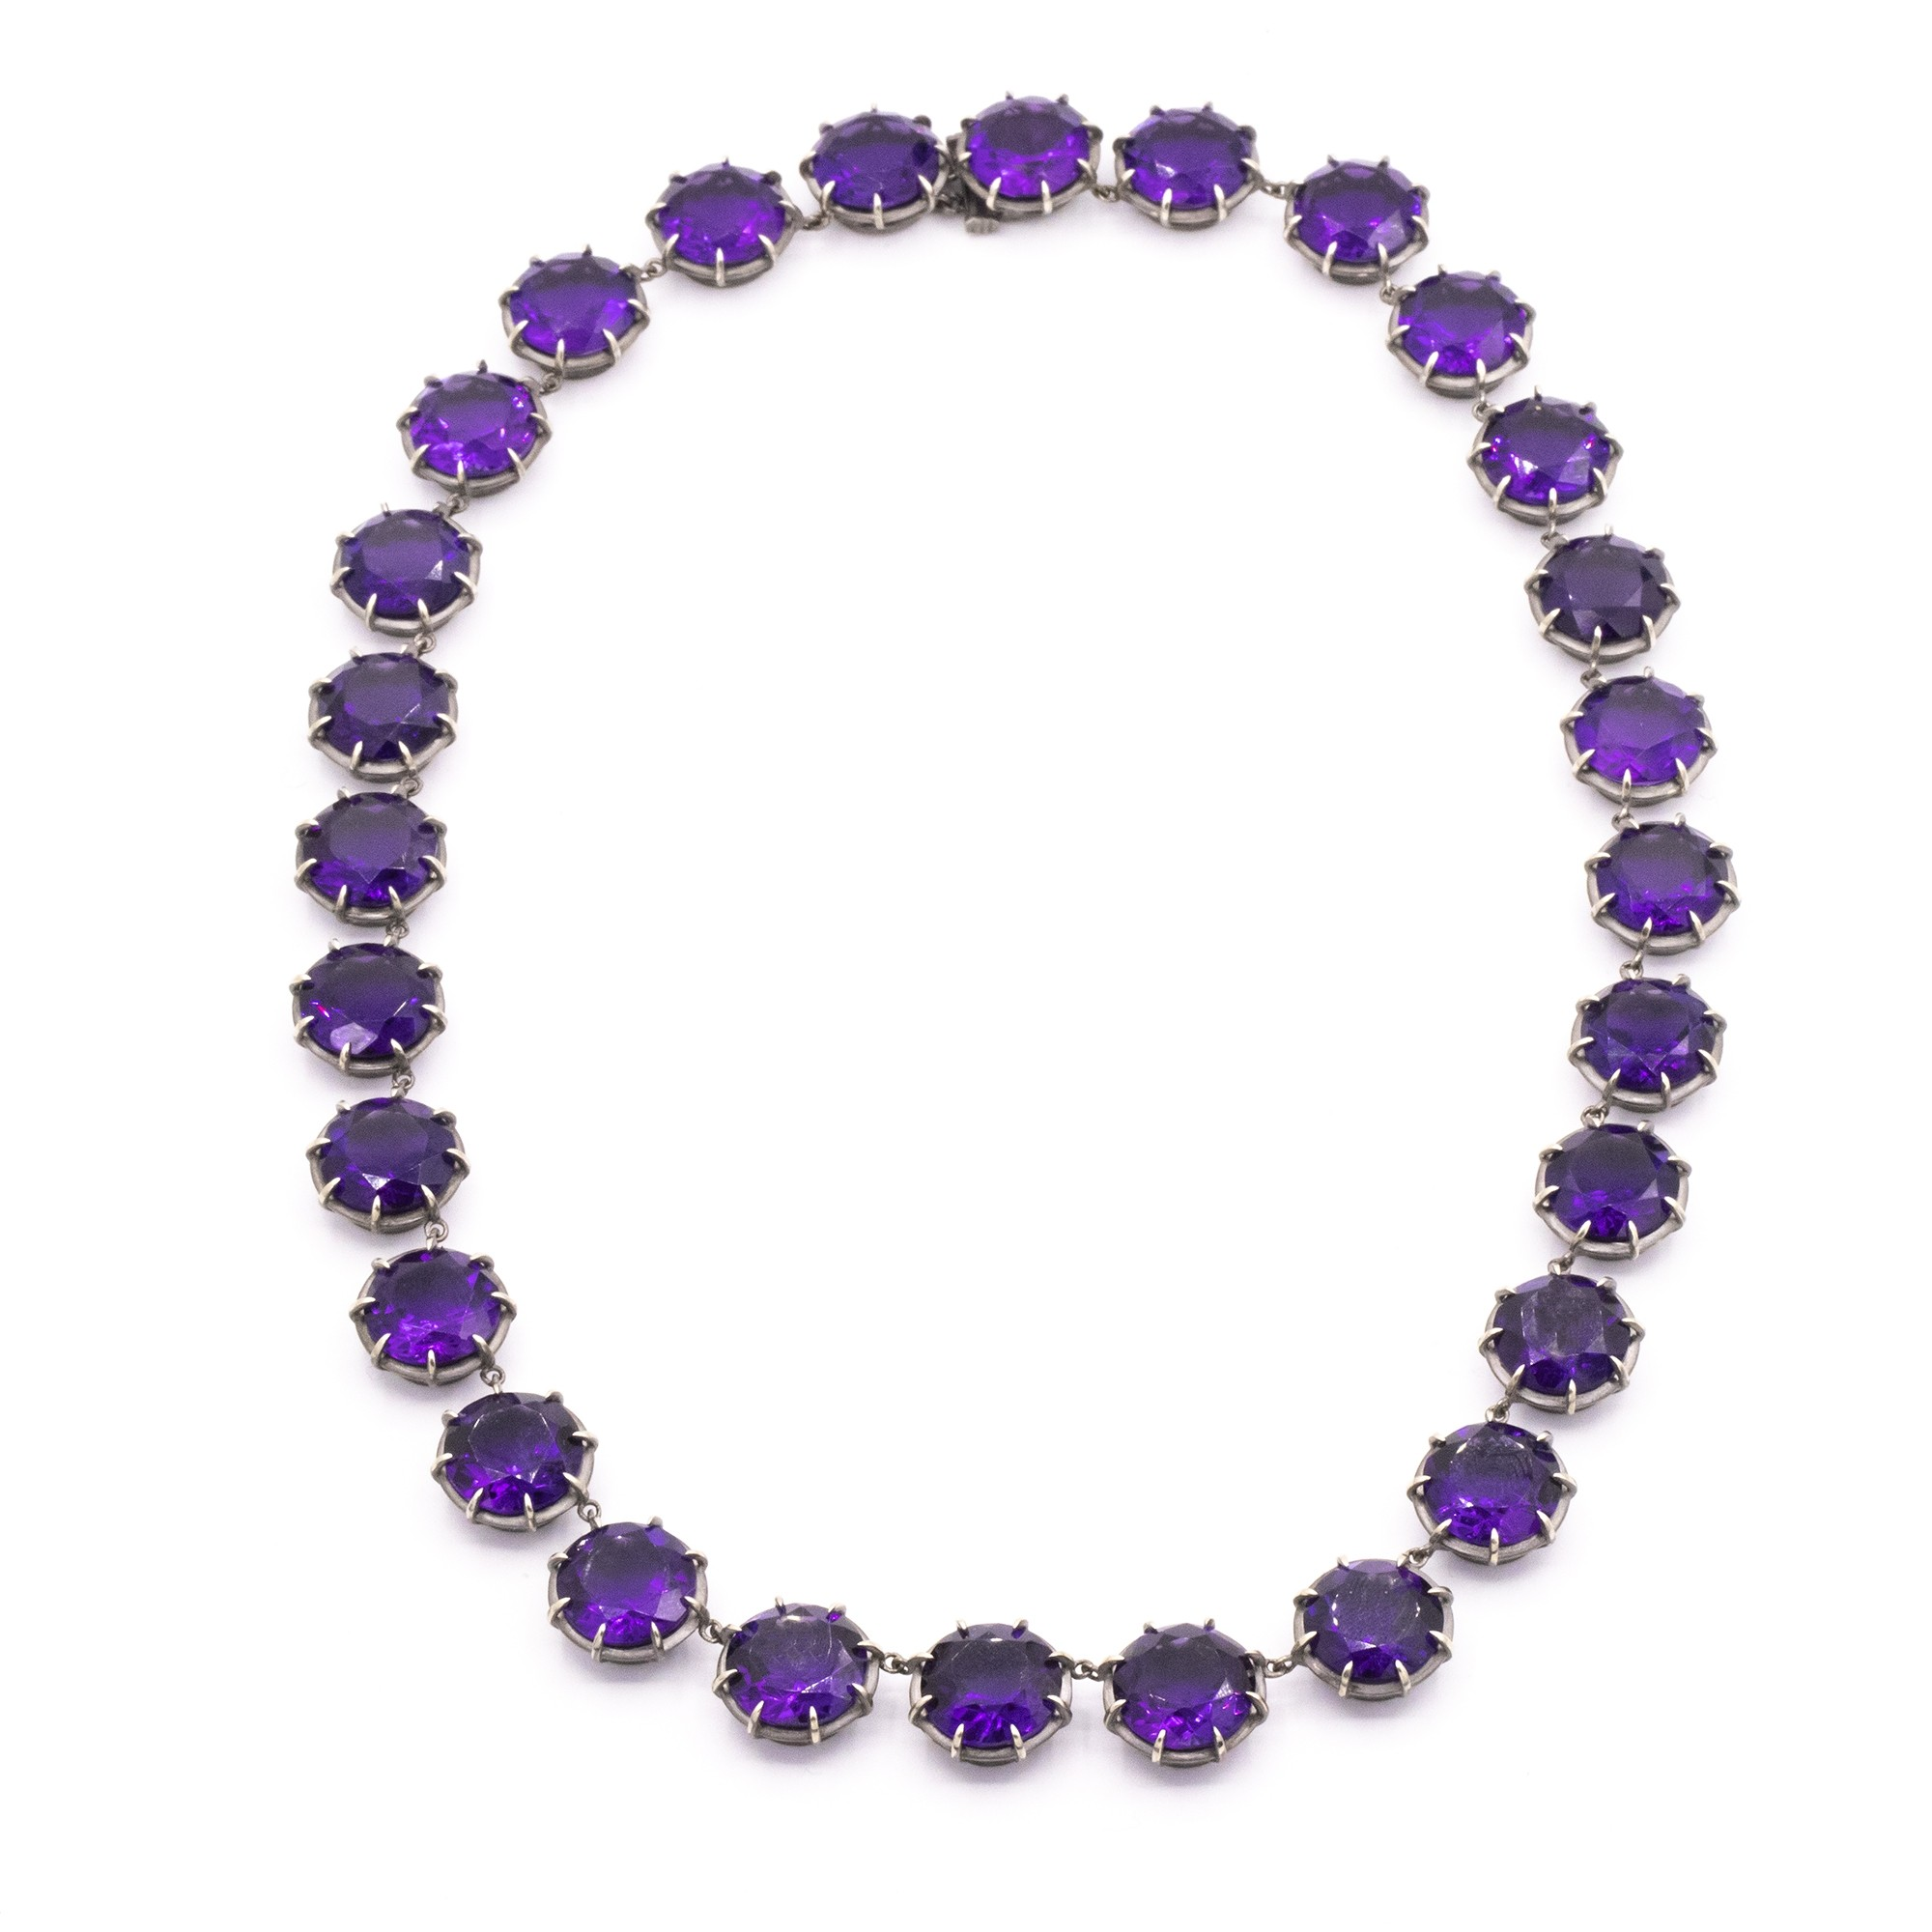 GEMMA COLLECTION AMETHYST NECKLACE